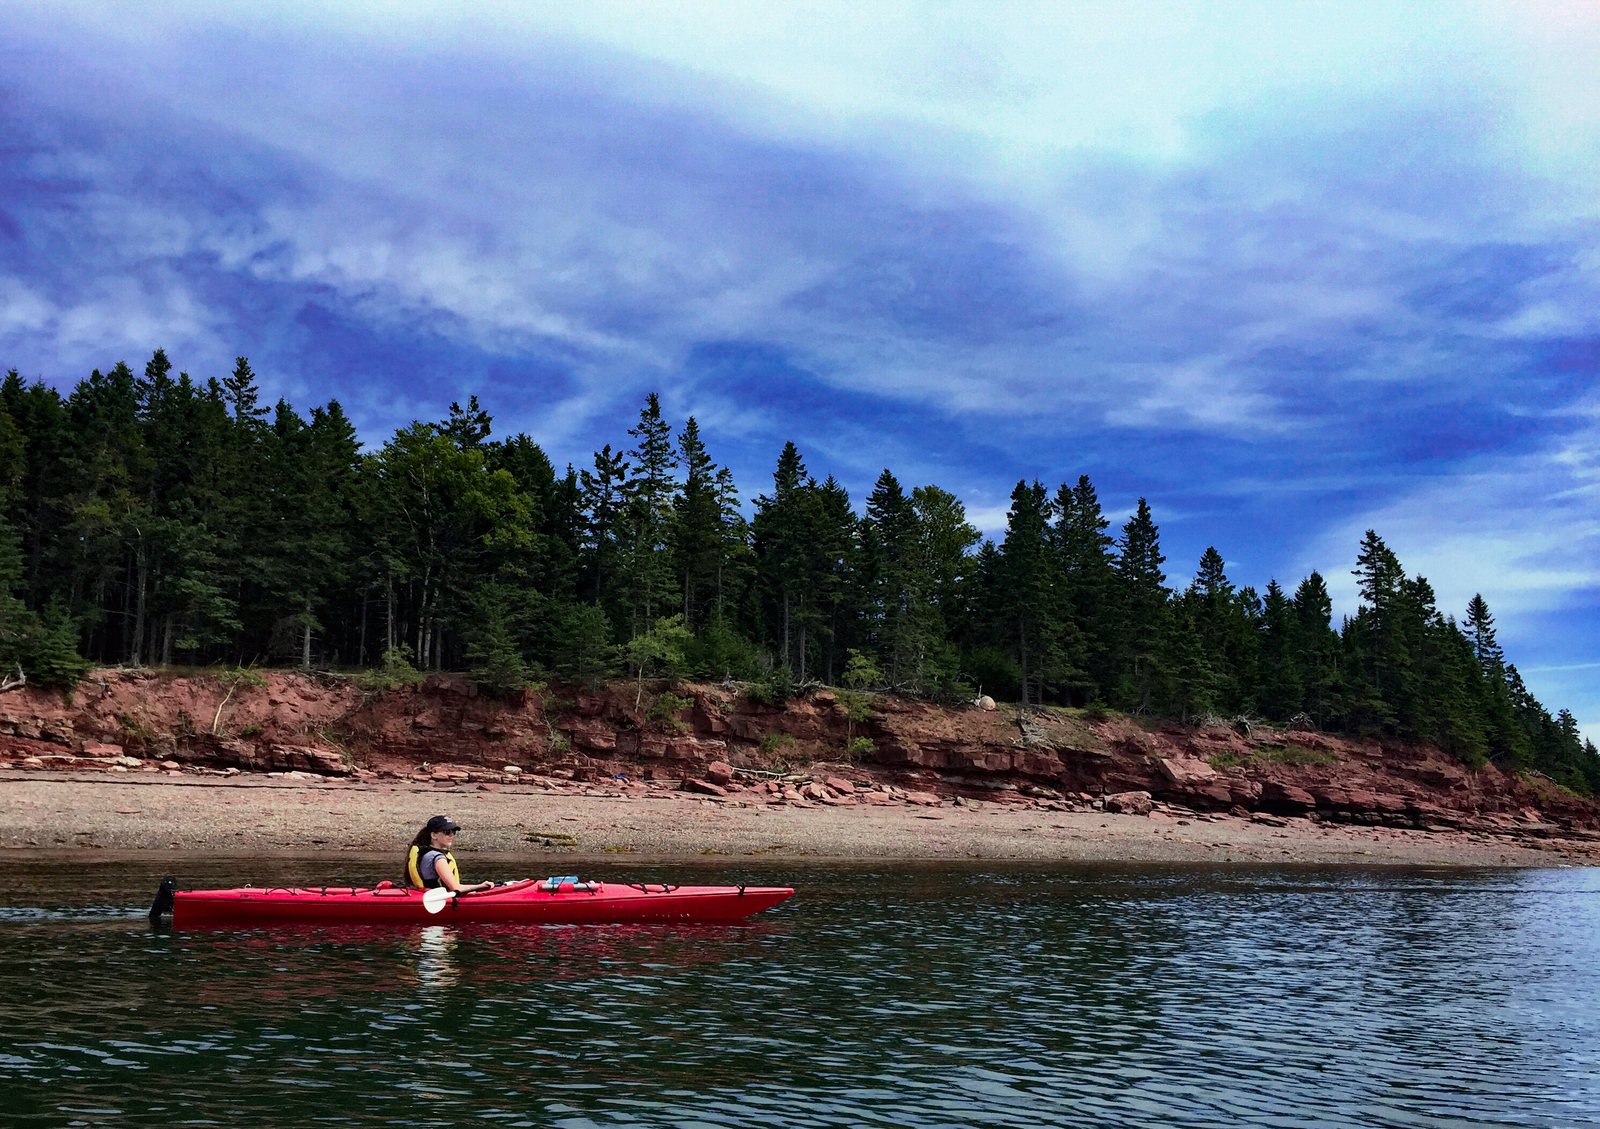 Kayaking is a great way to explore St. Andrews, New Brunswick. - JIM BYERS PHOTO